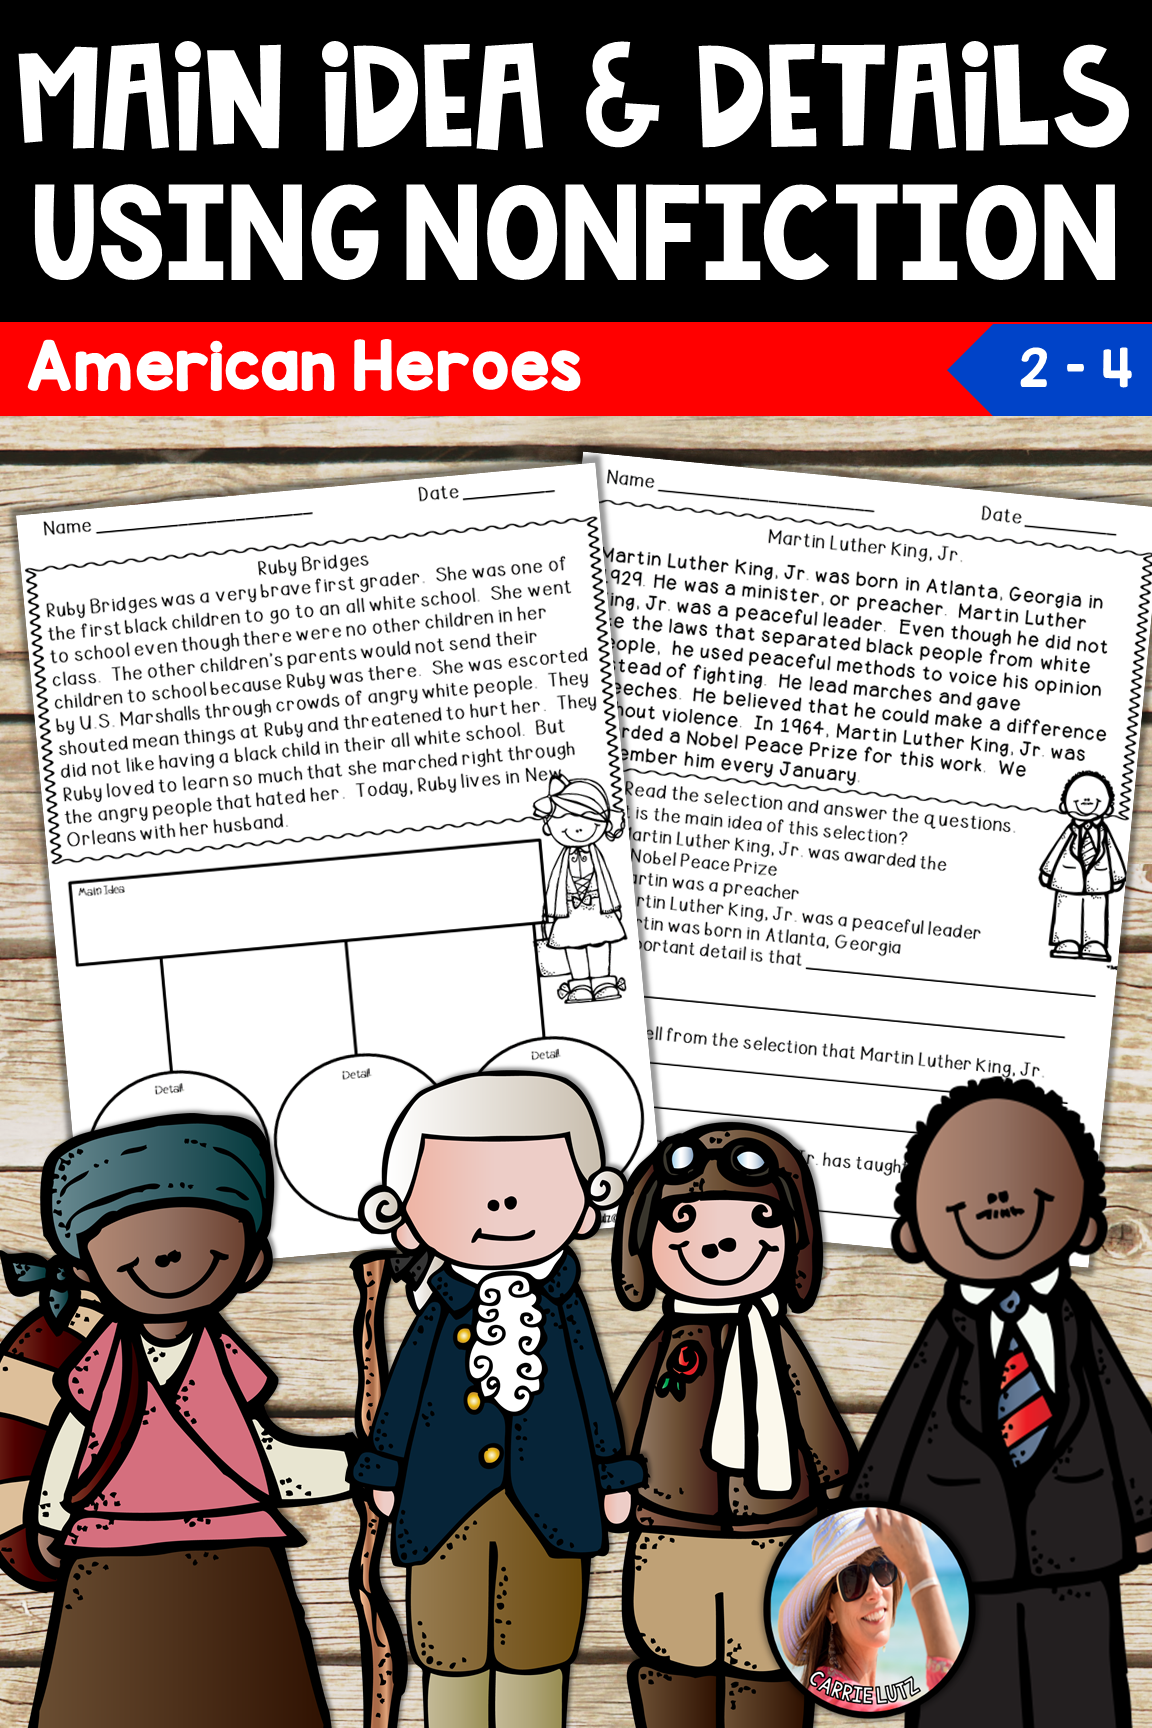 Main Idea And Details Using Nonfiction Text American